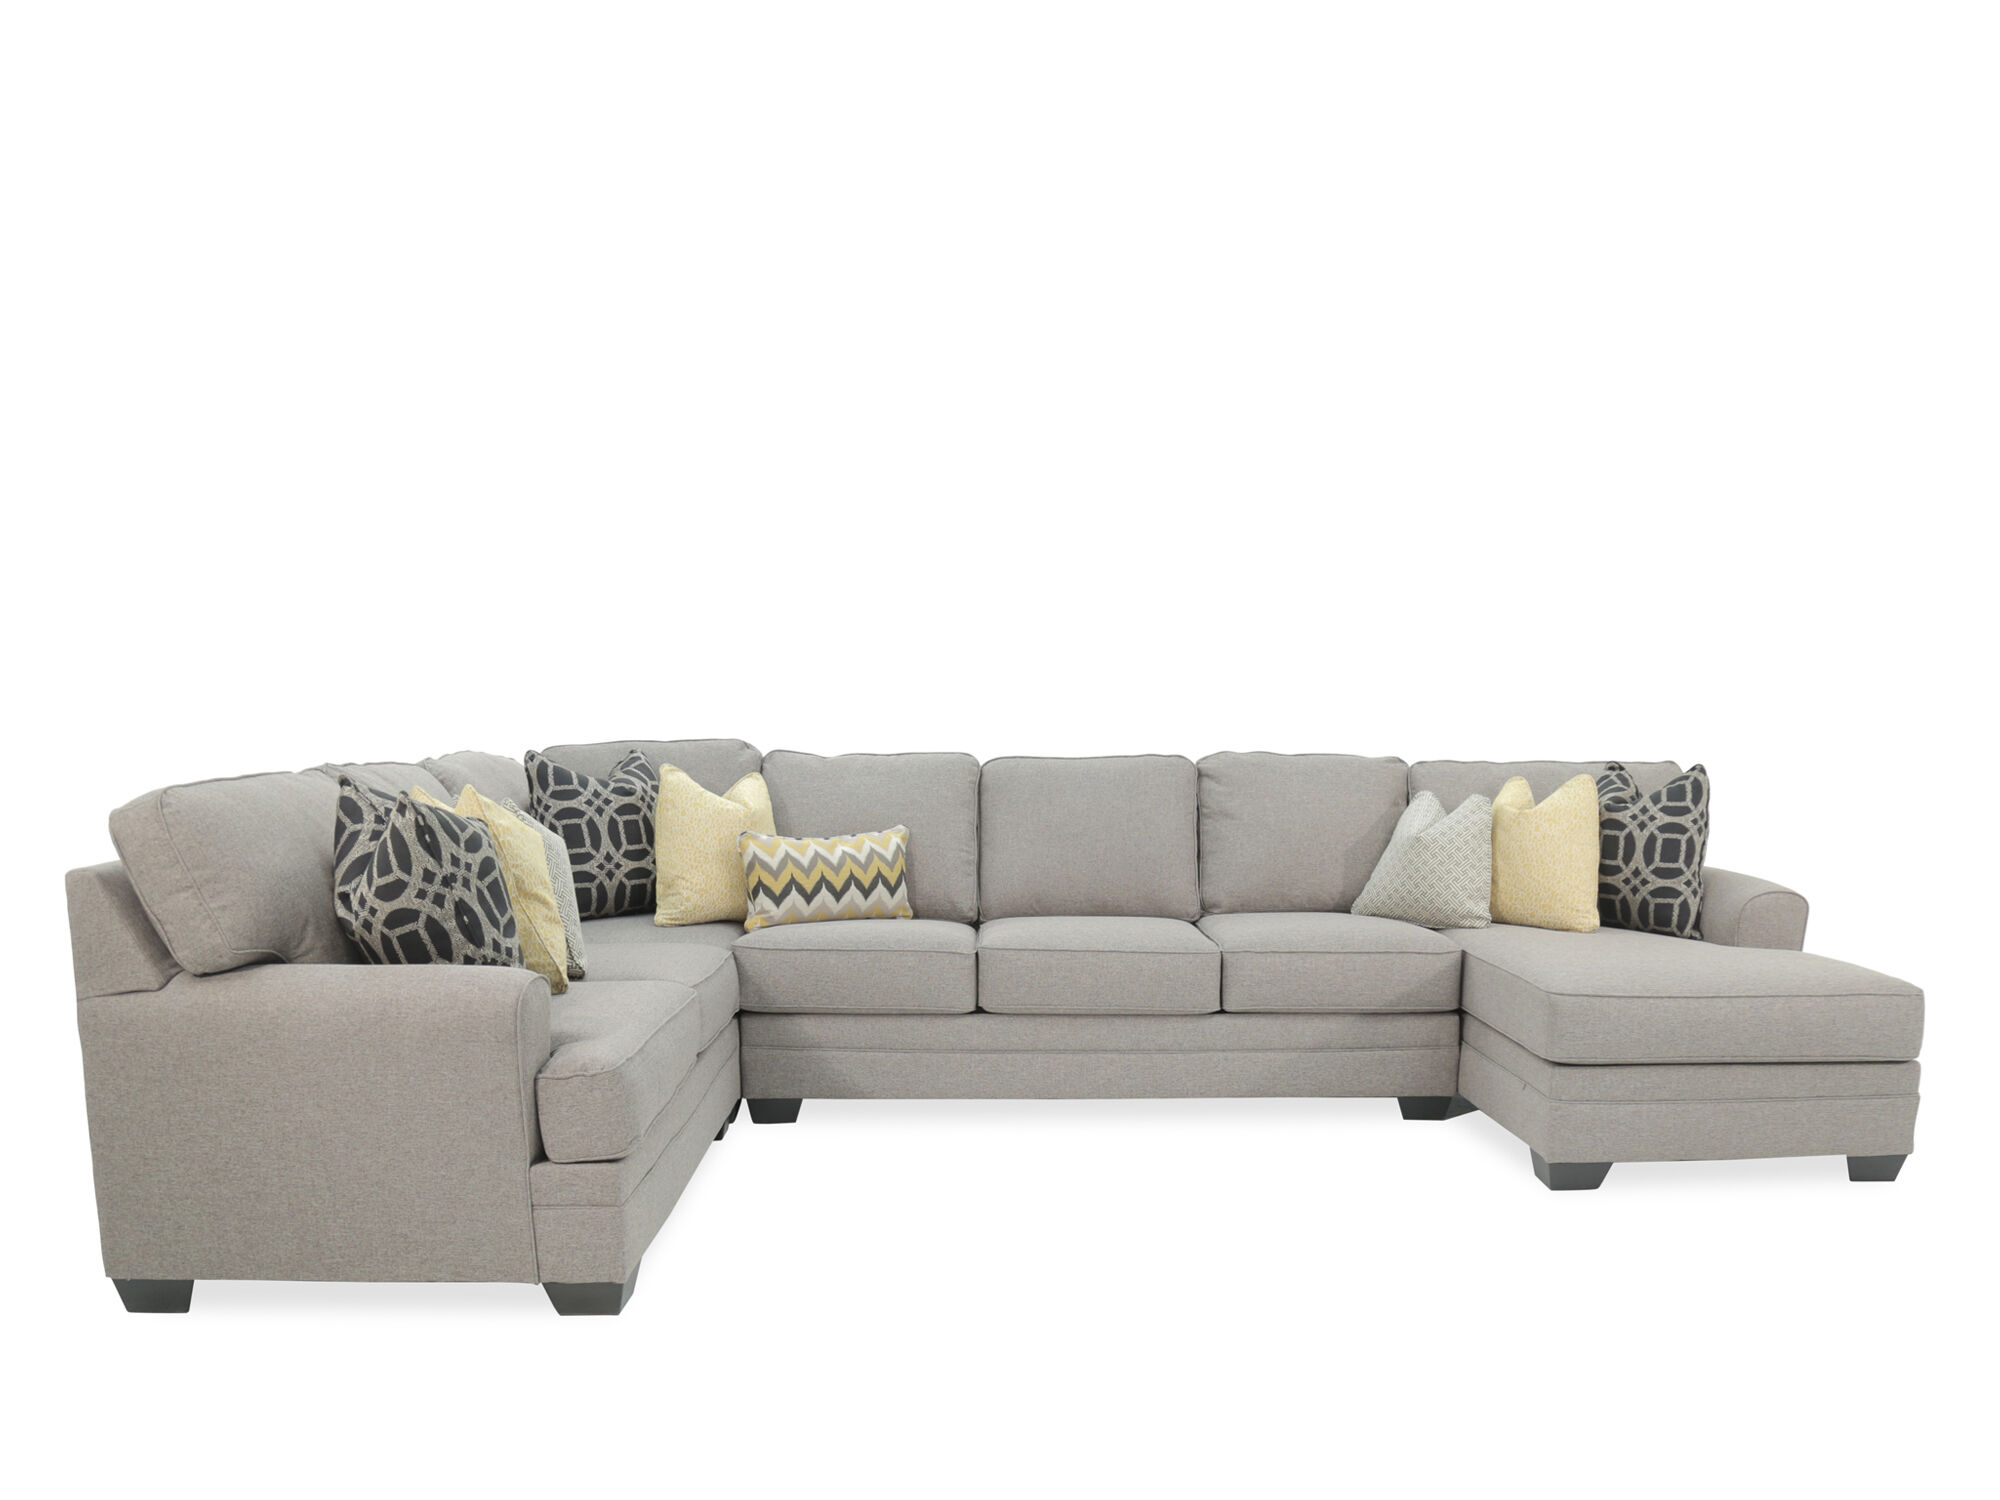 sectional sofas modular sectionals mathis brothers rh mathisbrothers com sectional couch okc sectional sofas oklahoma city